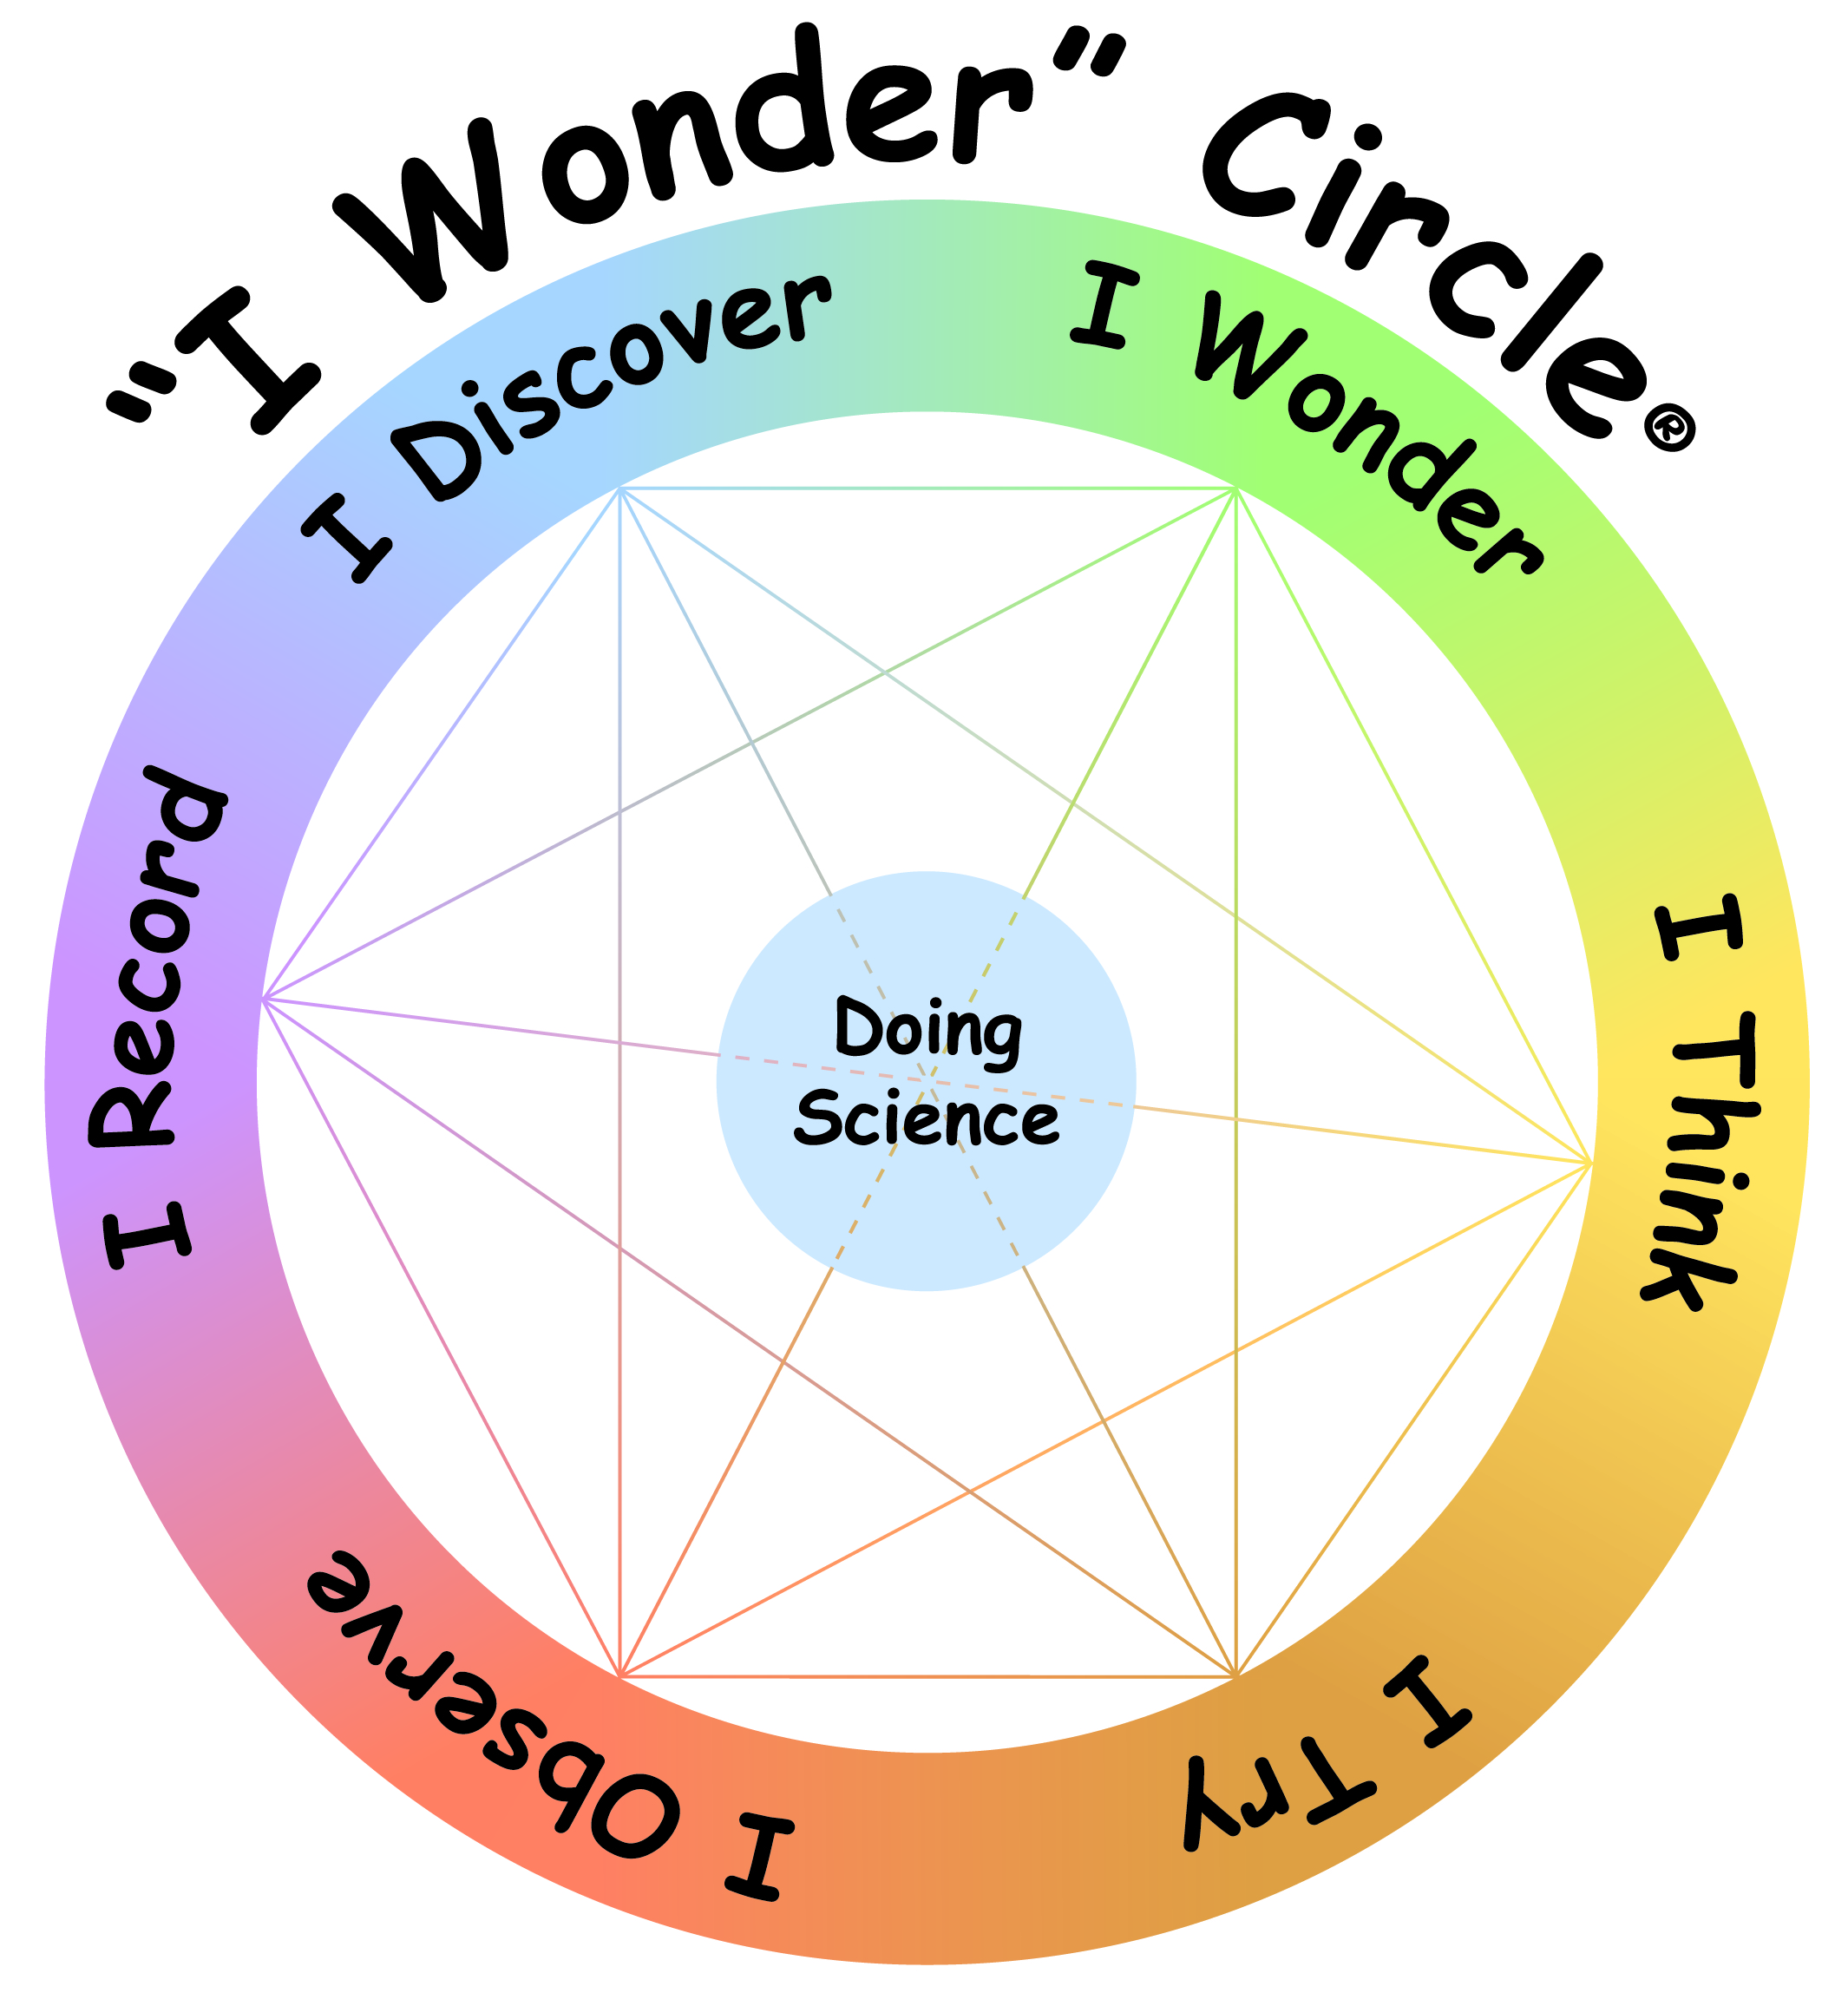 Diagram Summarizing Relationship Among Uses Of The Inquiry From Those Who Learn Science